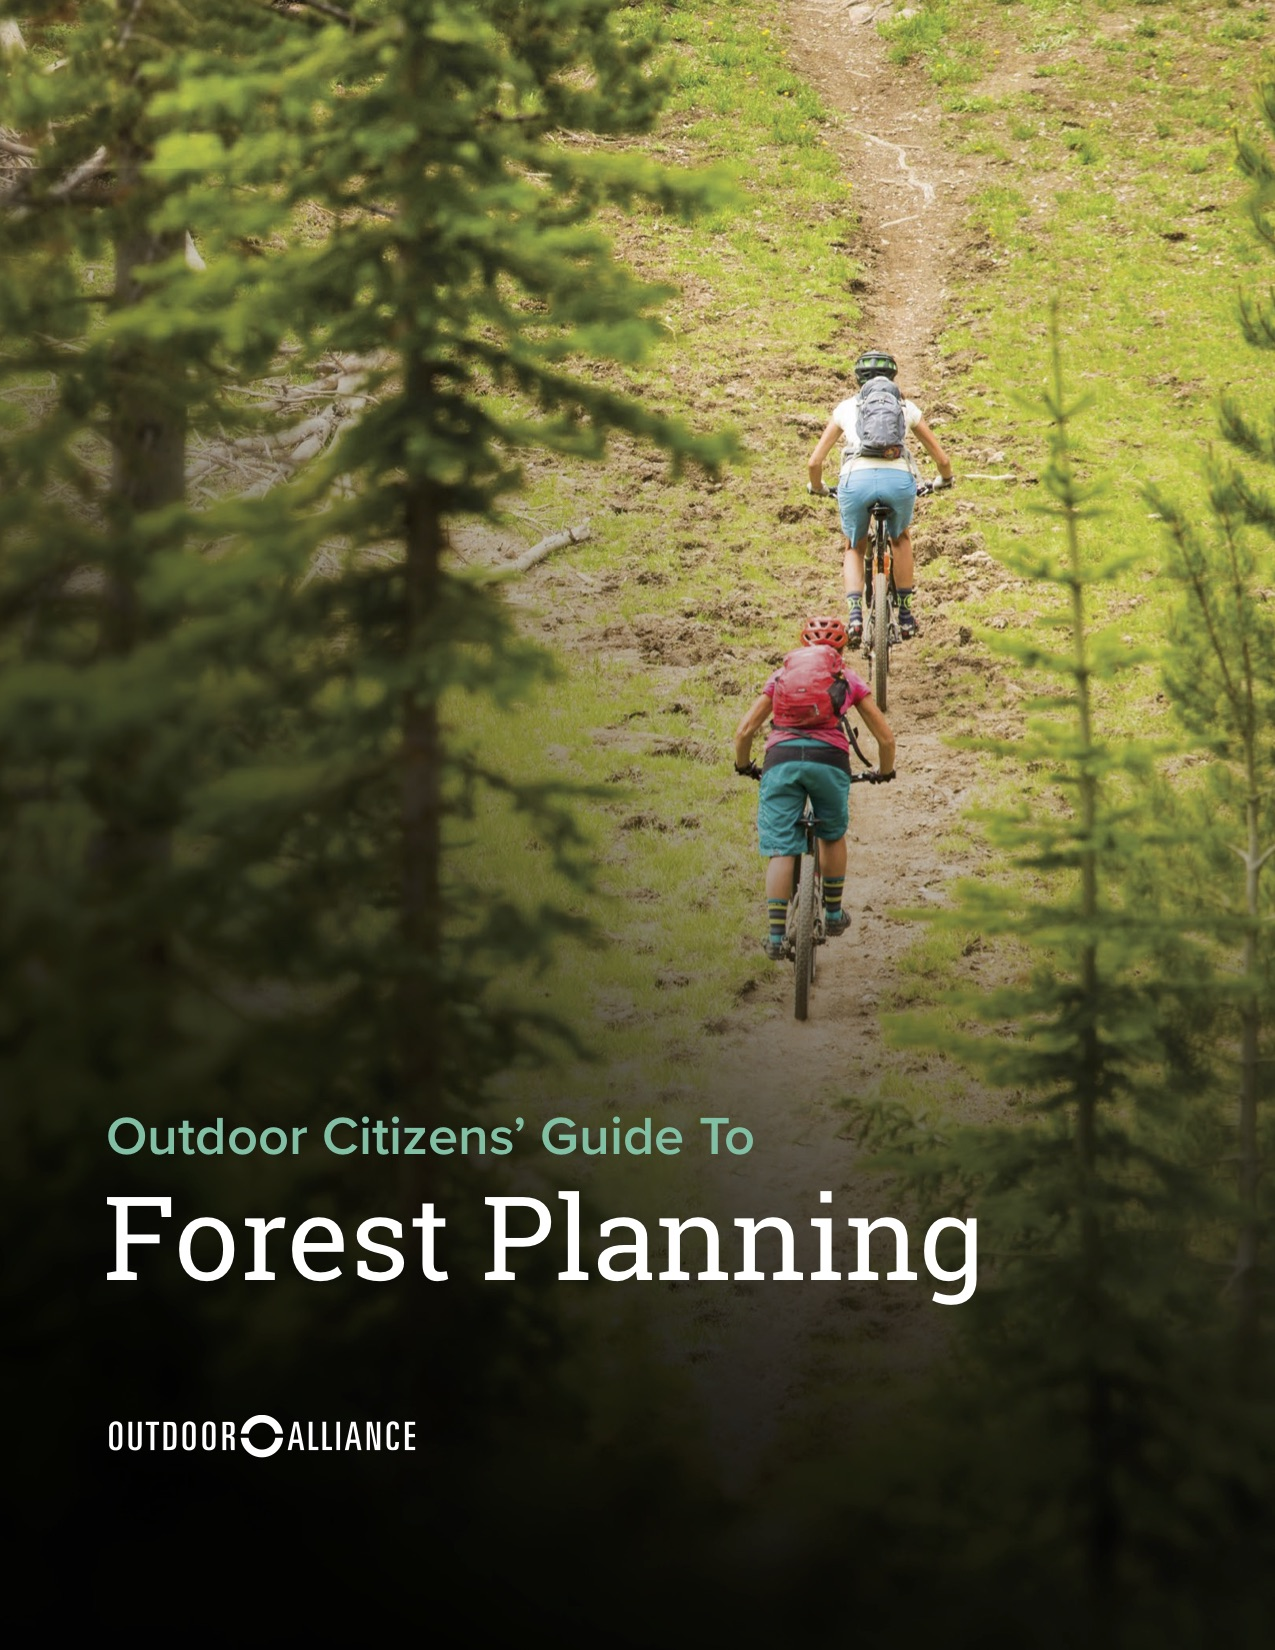 OA_Forest_Planning Cover Image.jpg